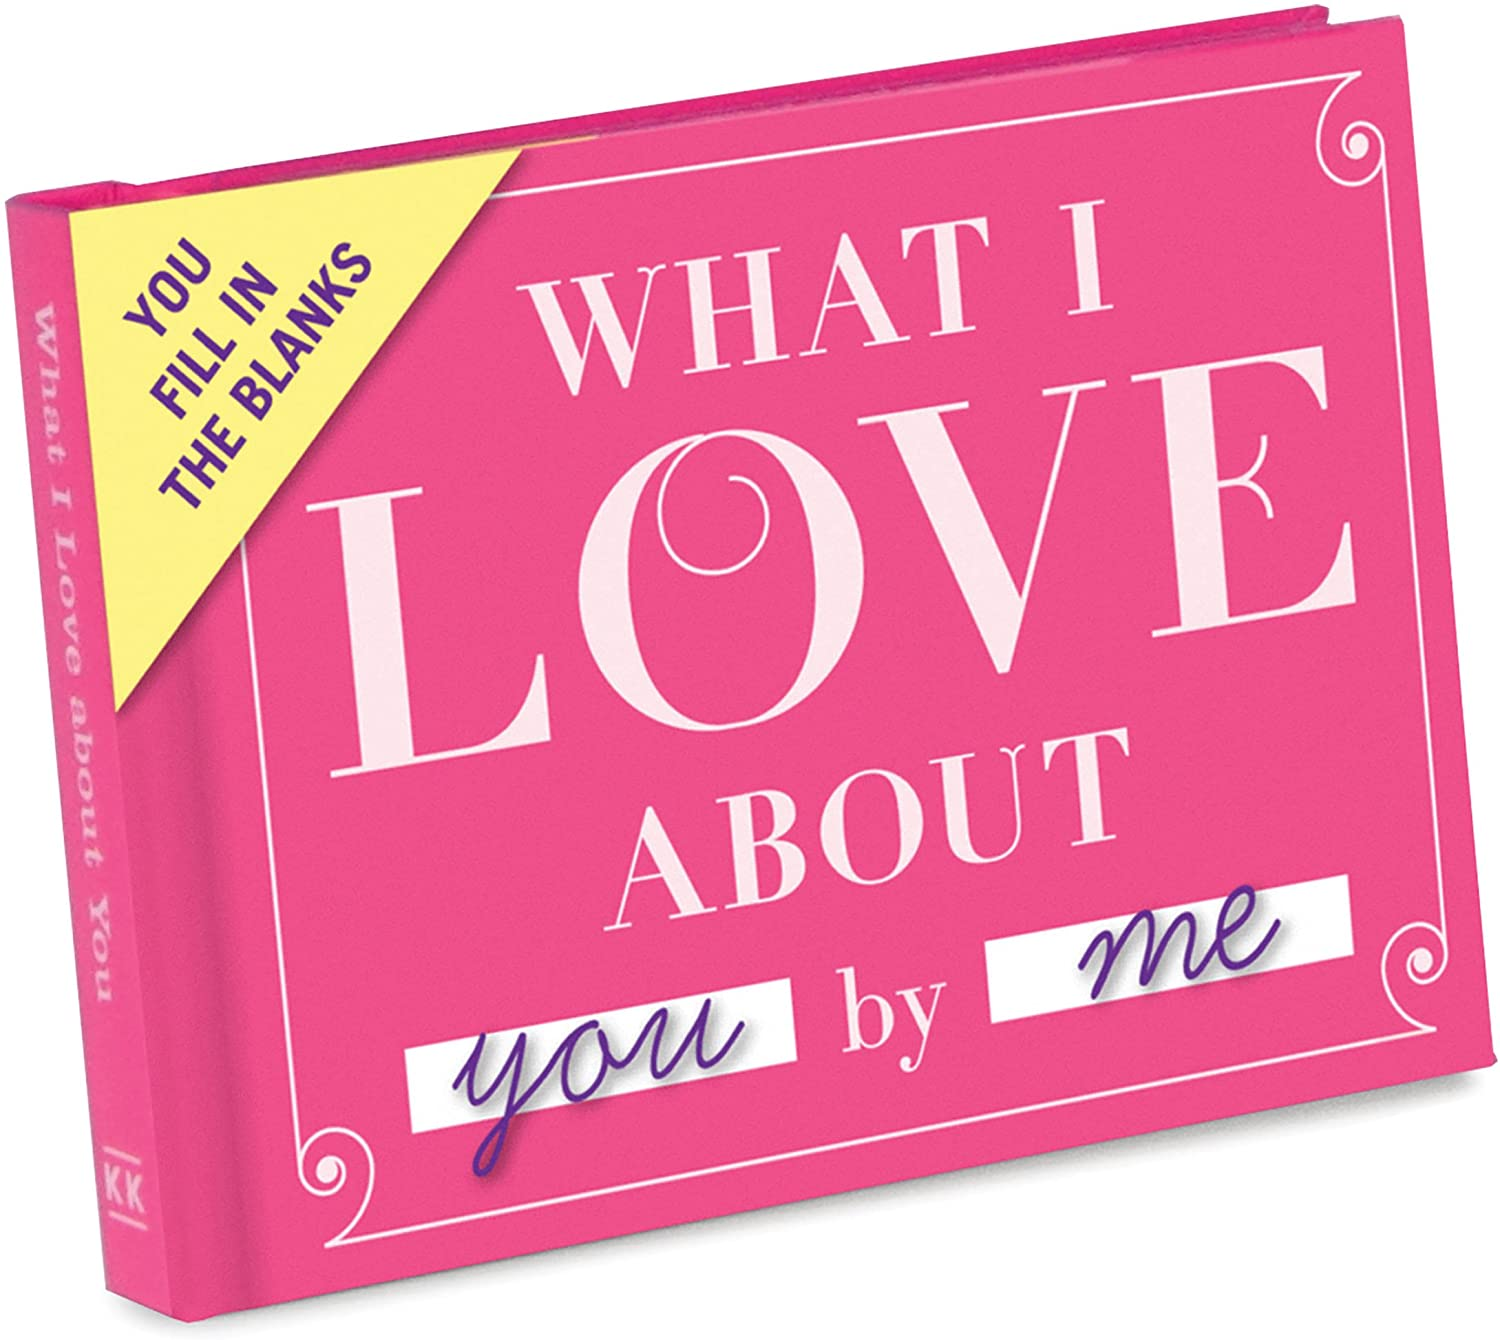 What I Love About You Fill in the Love Book